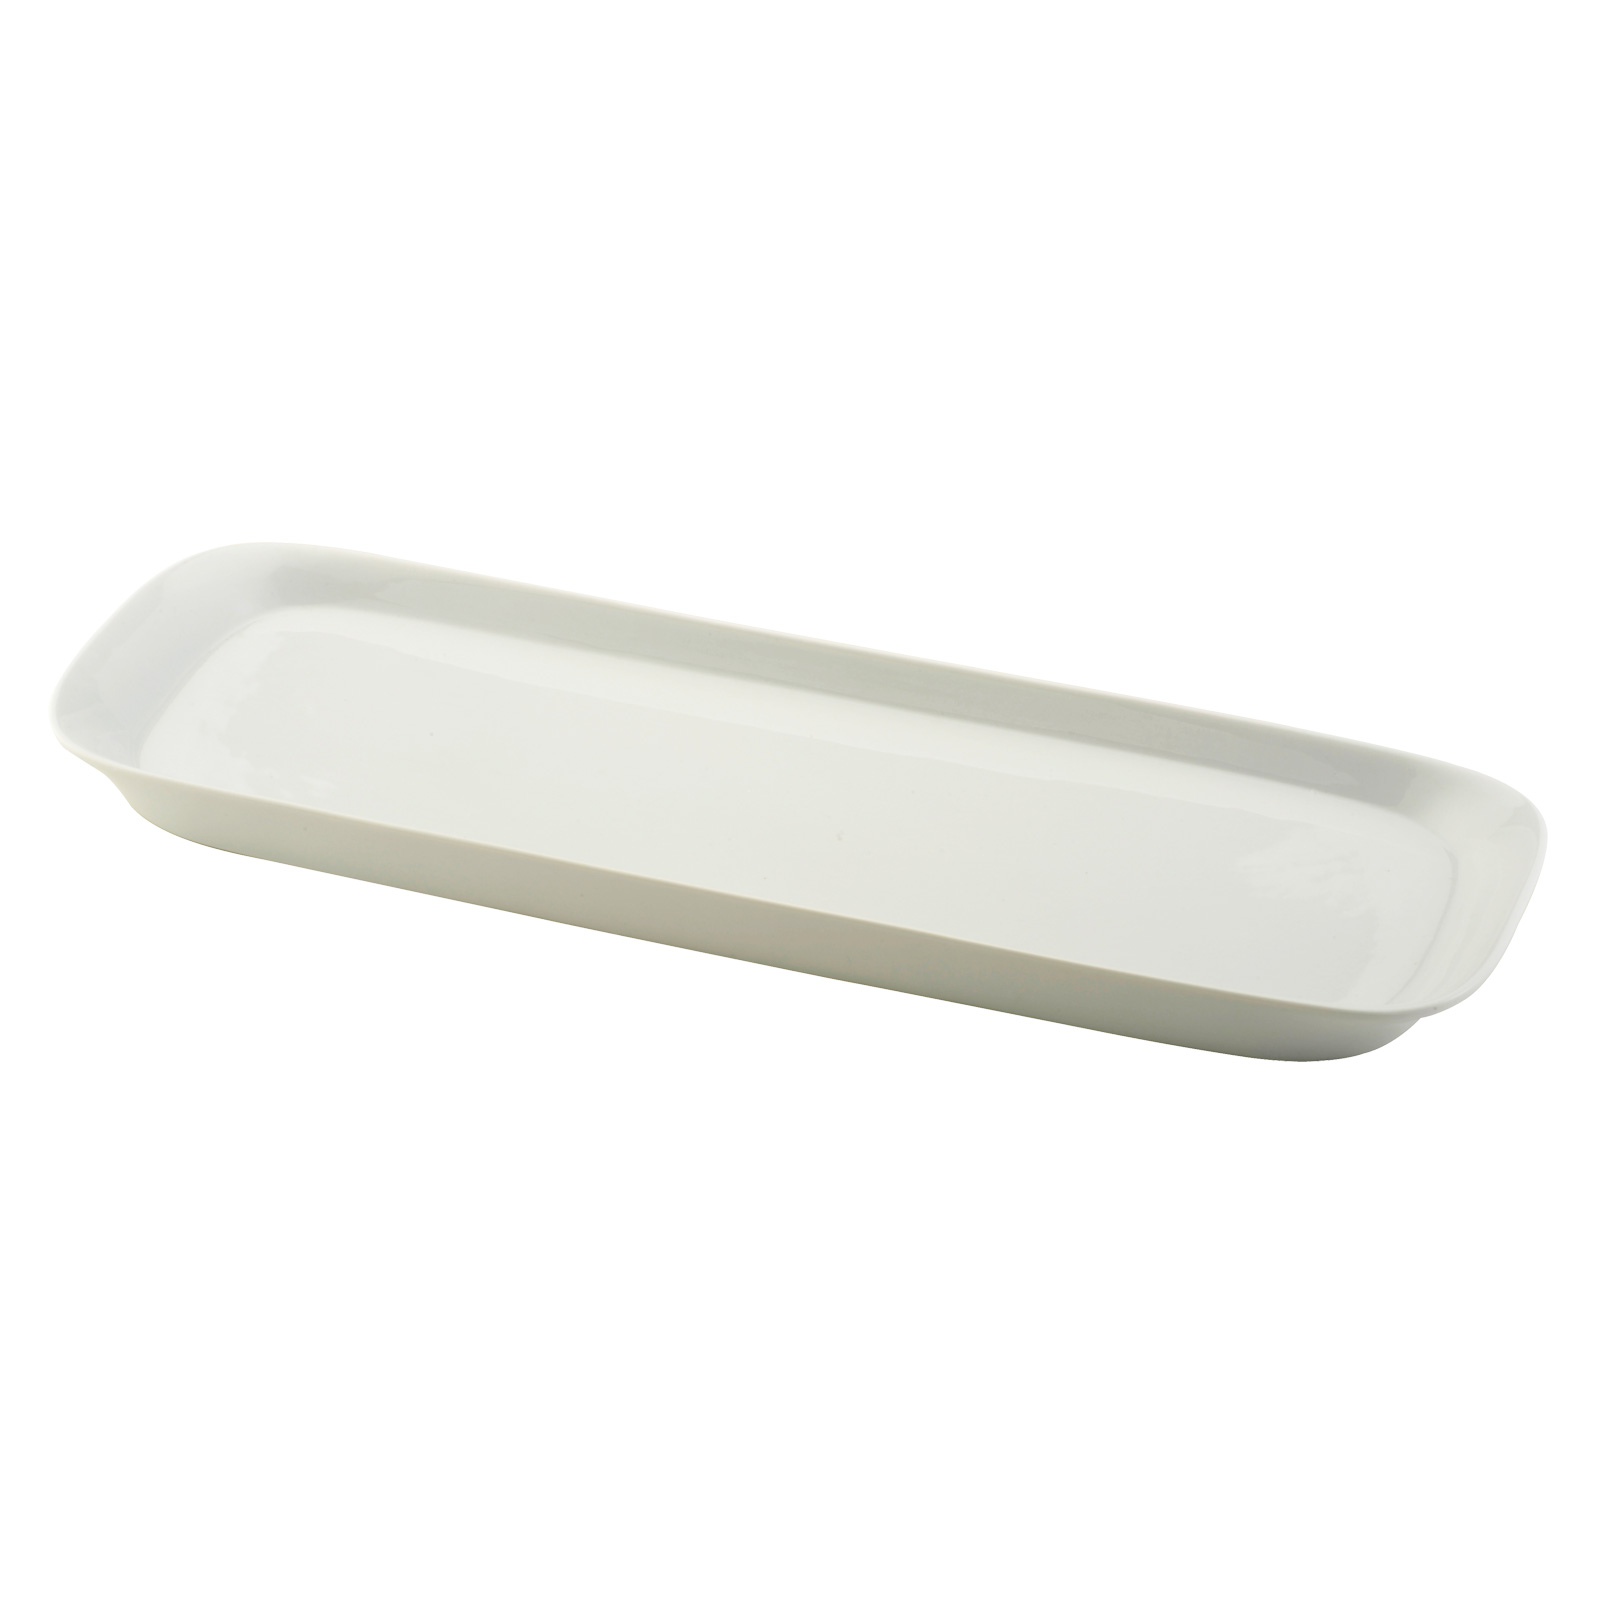 Oblong Platter Large  by BIA